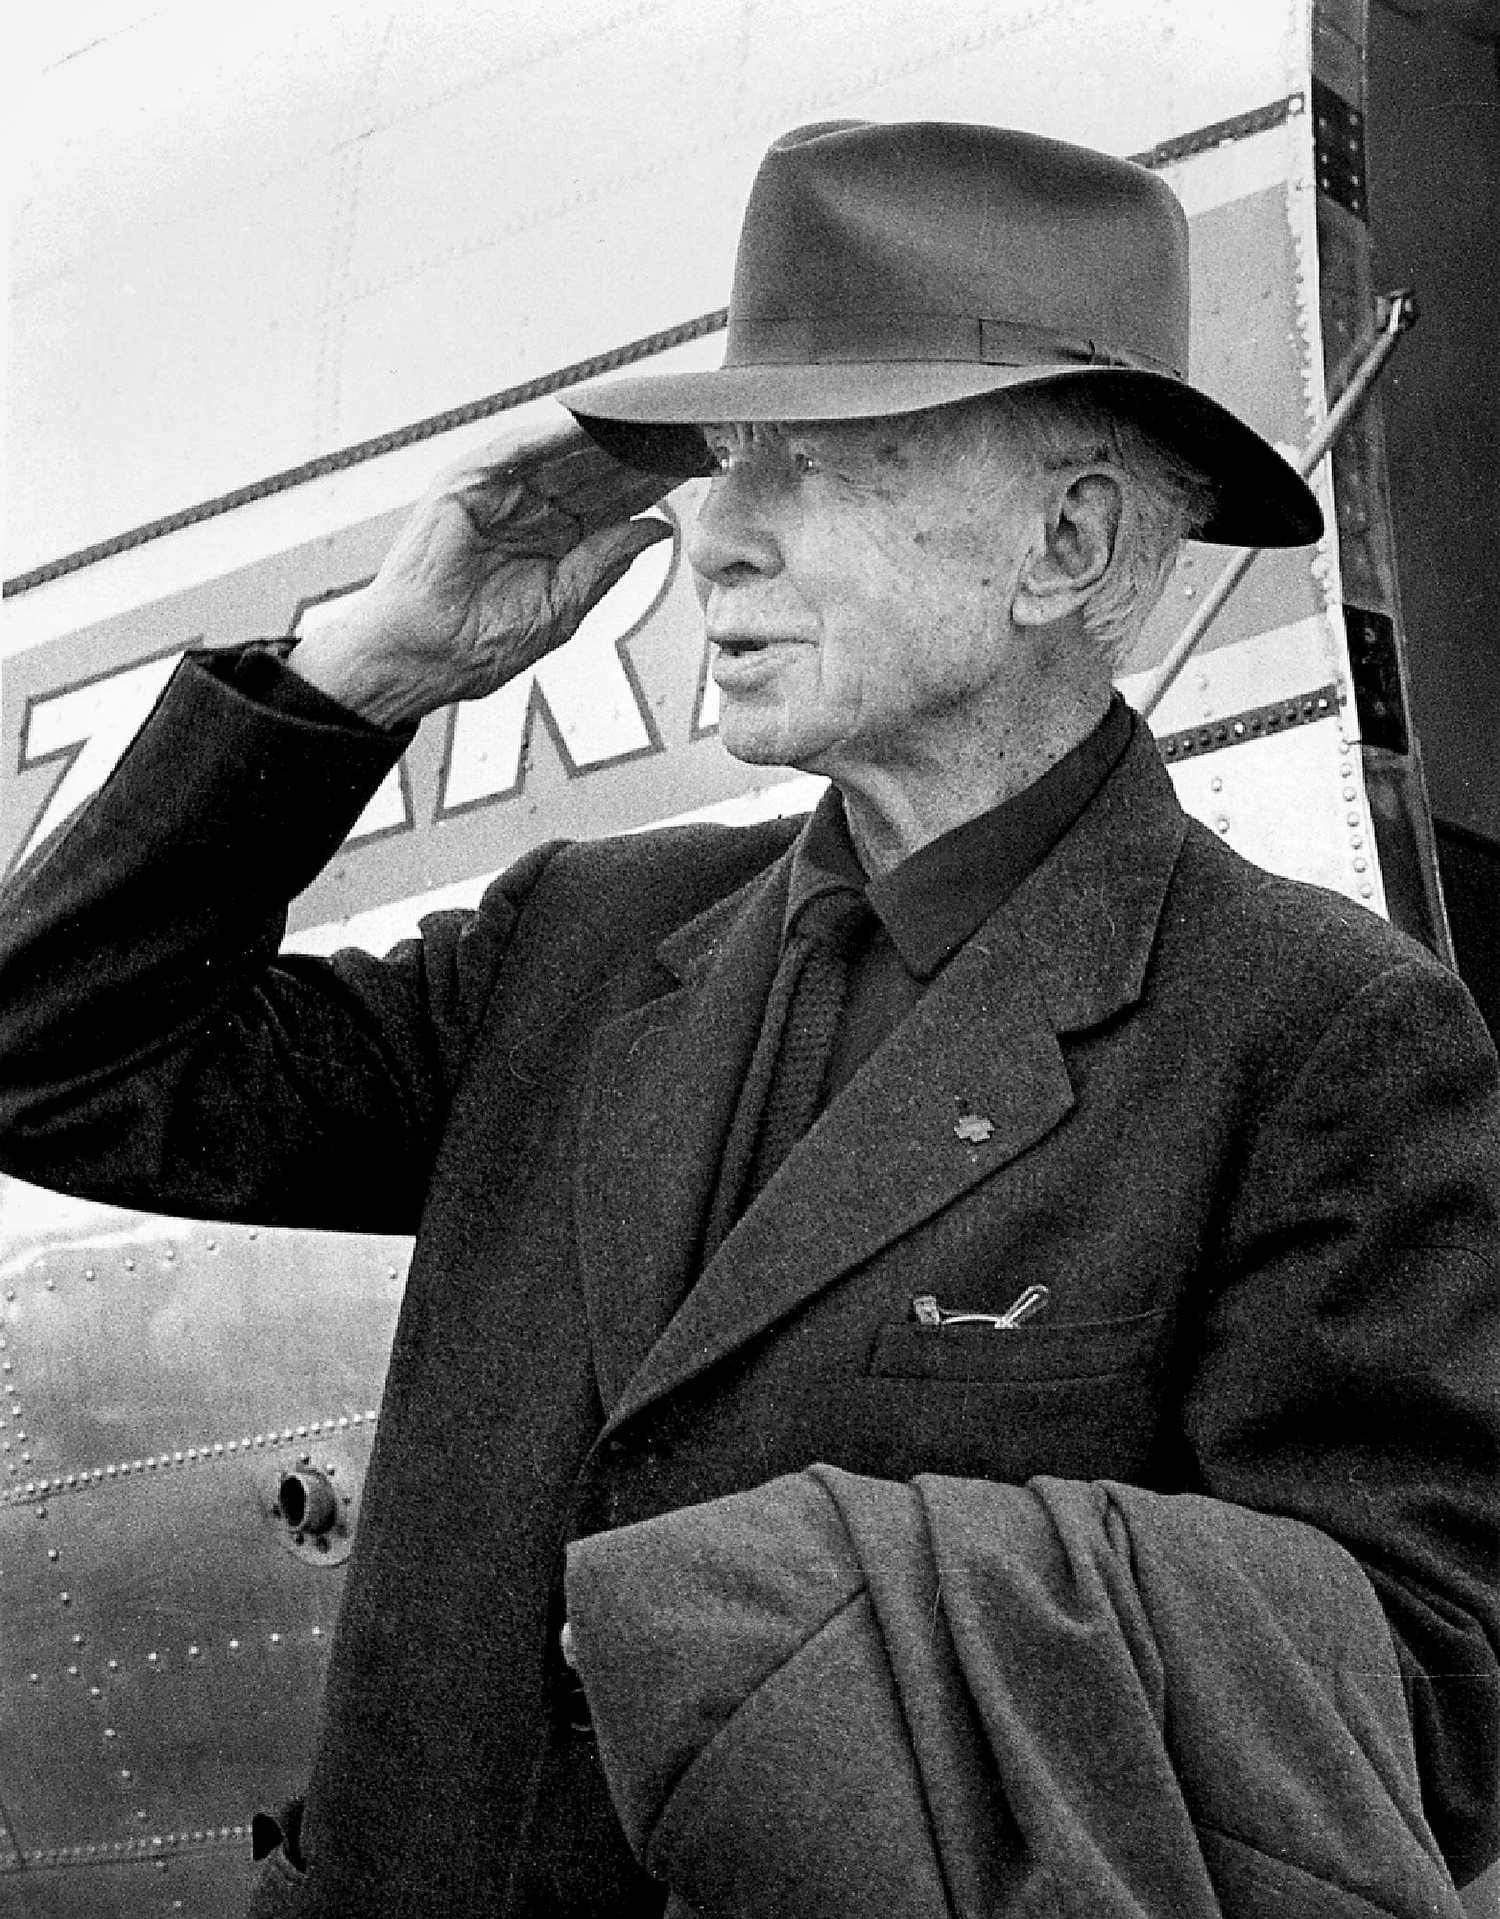 Poet Carl Sandburg arrives at Capital Airport to take part in a ceremony dedicating the Springfield school that bears his name, Oct. 8, 1961. [Bill Hagen/The State Journal-Register]